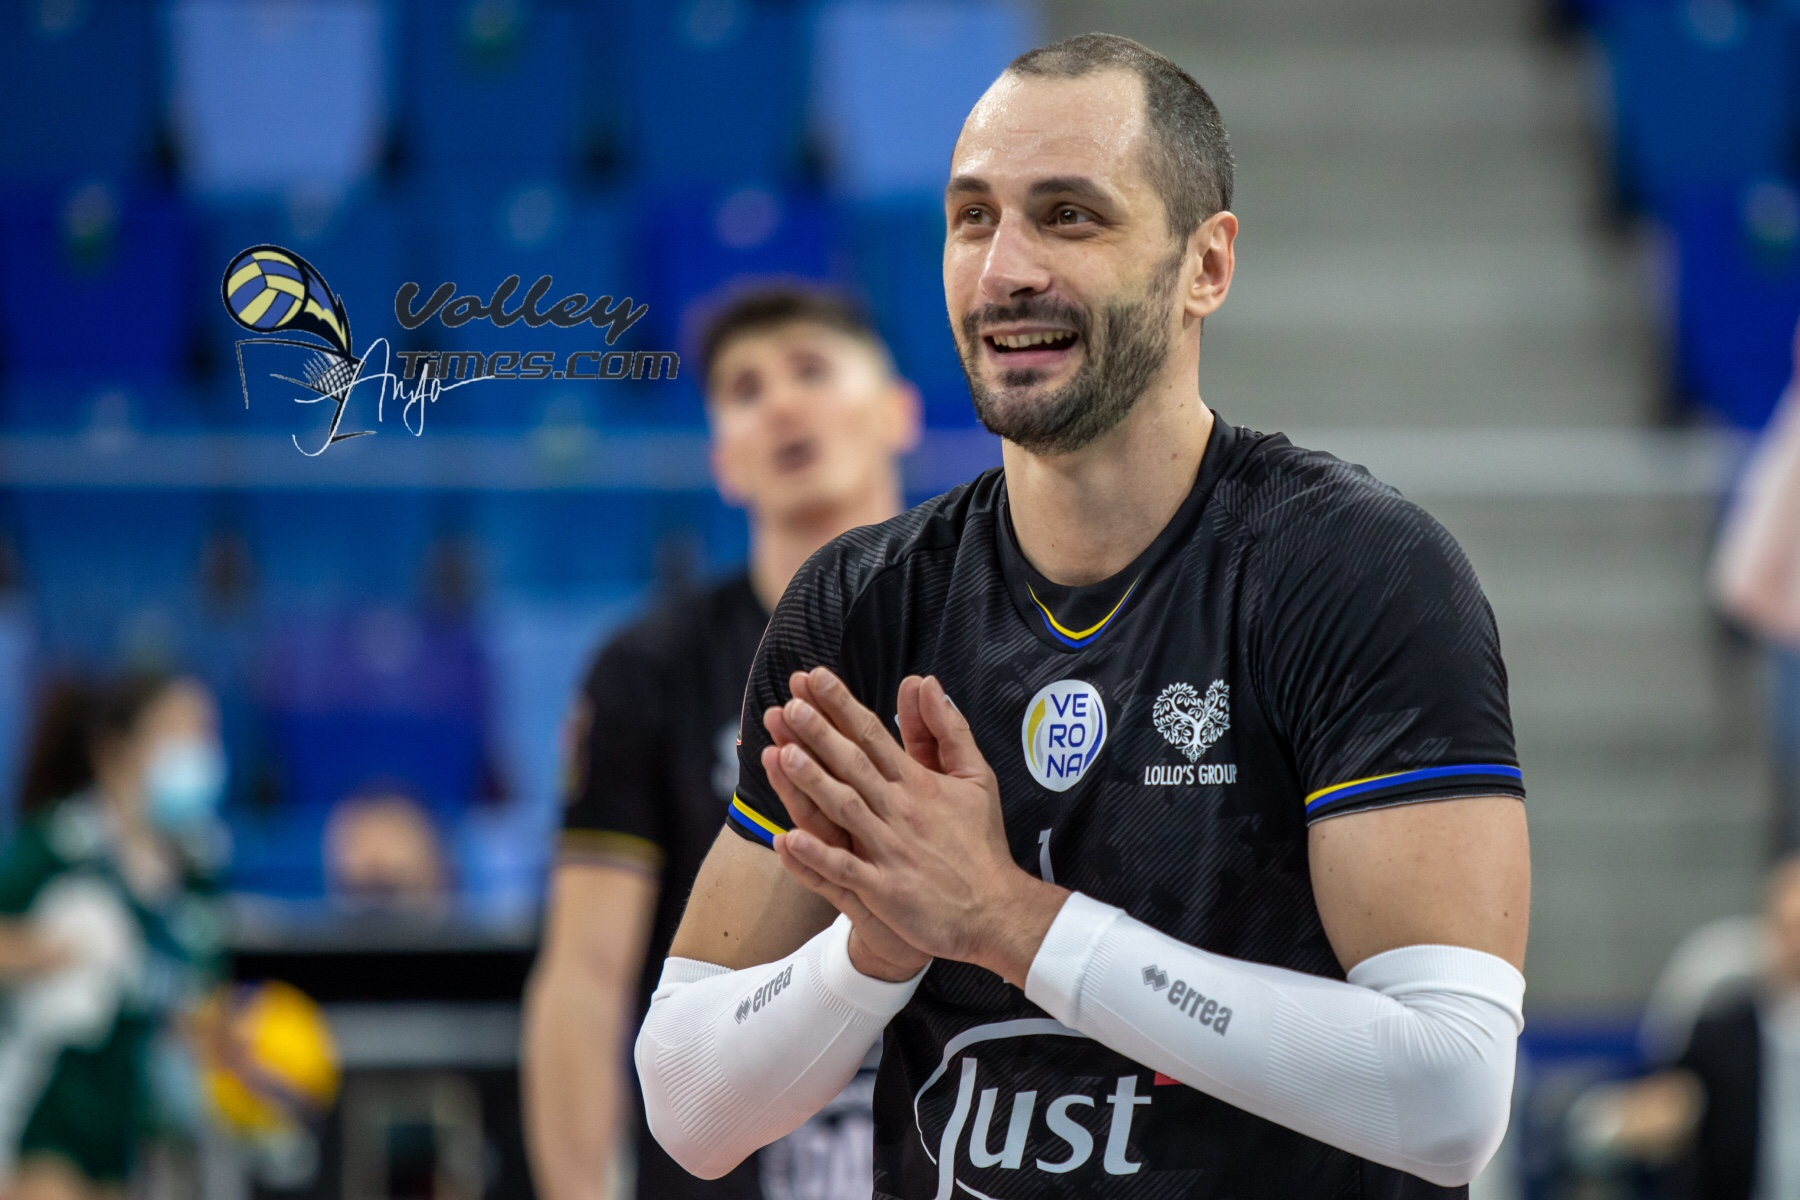 Italy: a never ending love – Kaziyski in Trentino for 4th time